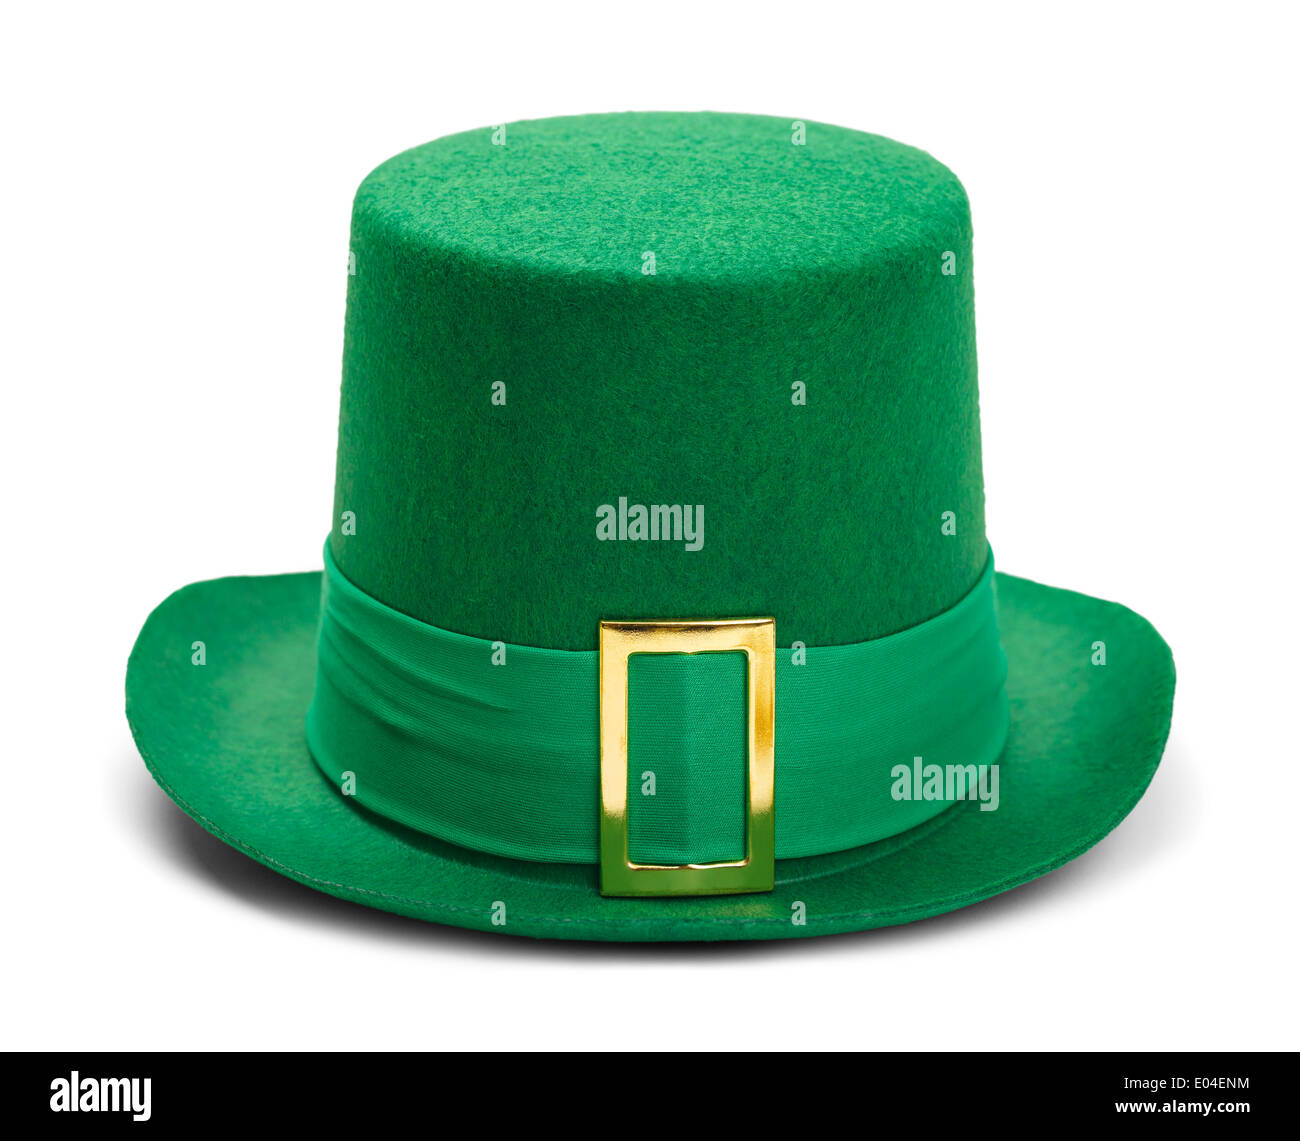 Green St. Patricks Day Felt Top Hat With Gold Buckle Isolated on White Background. - Stock Image